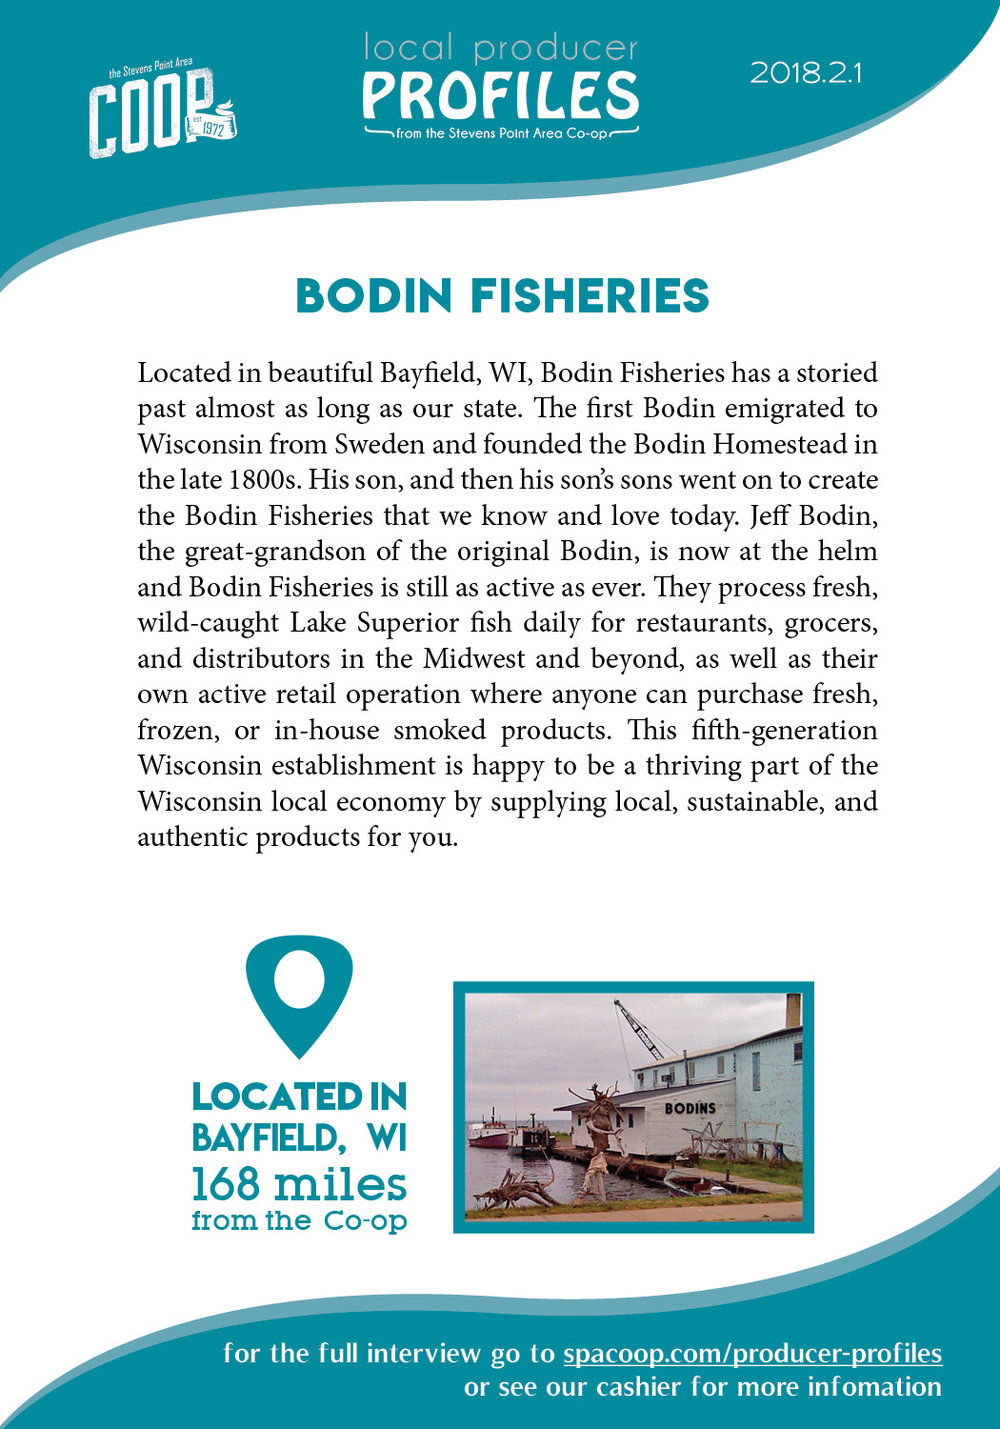 producer profile small_bodin fisheries.jpg